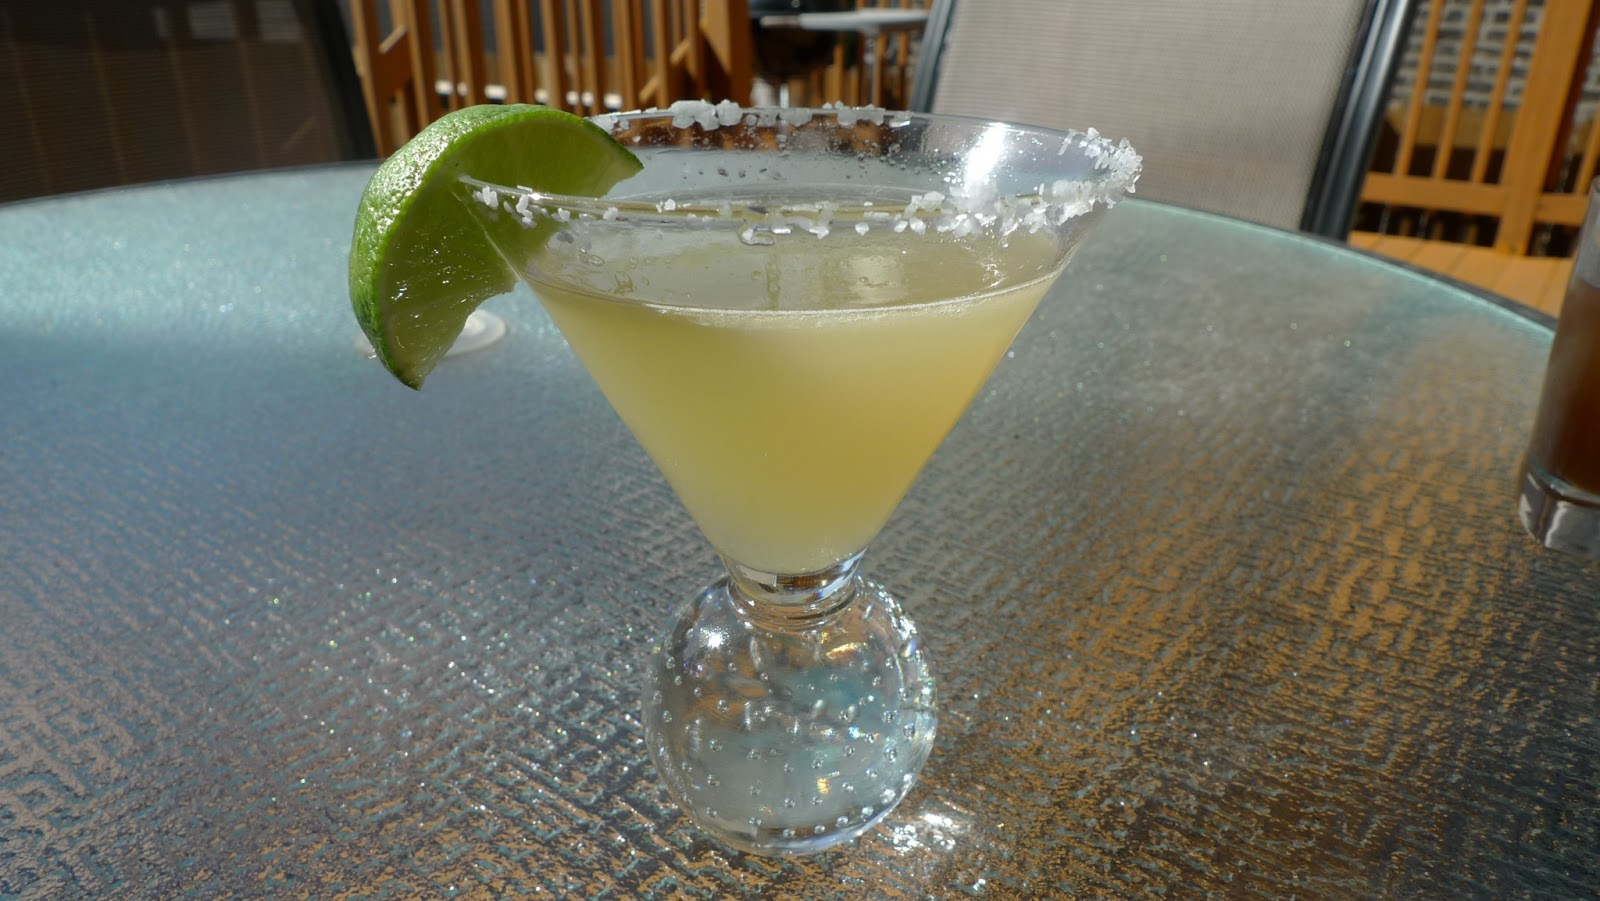 Mingling of Tastes: Margarita with Easy Homemade Sour Mix